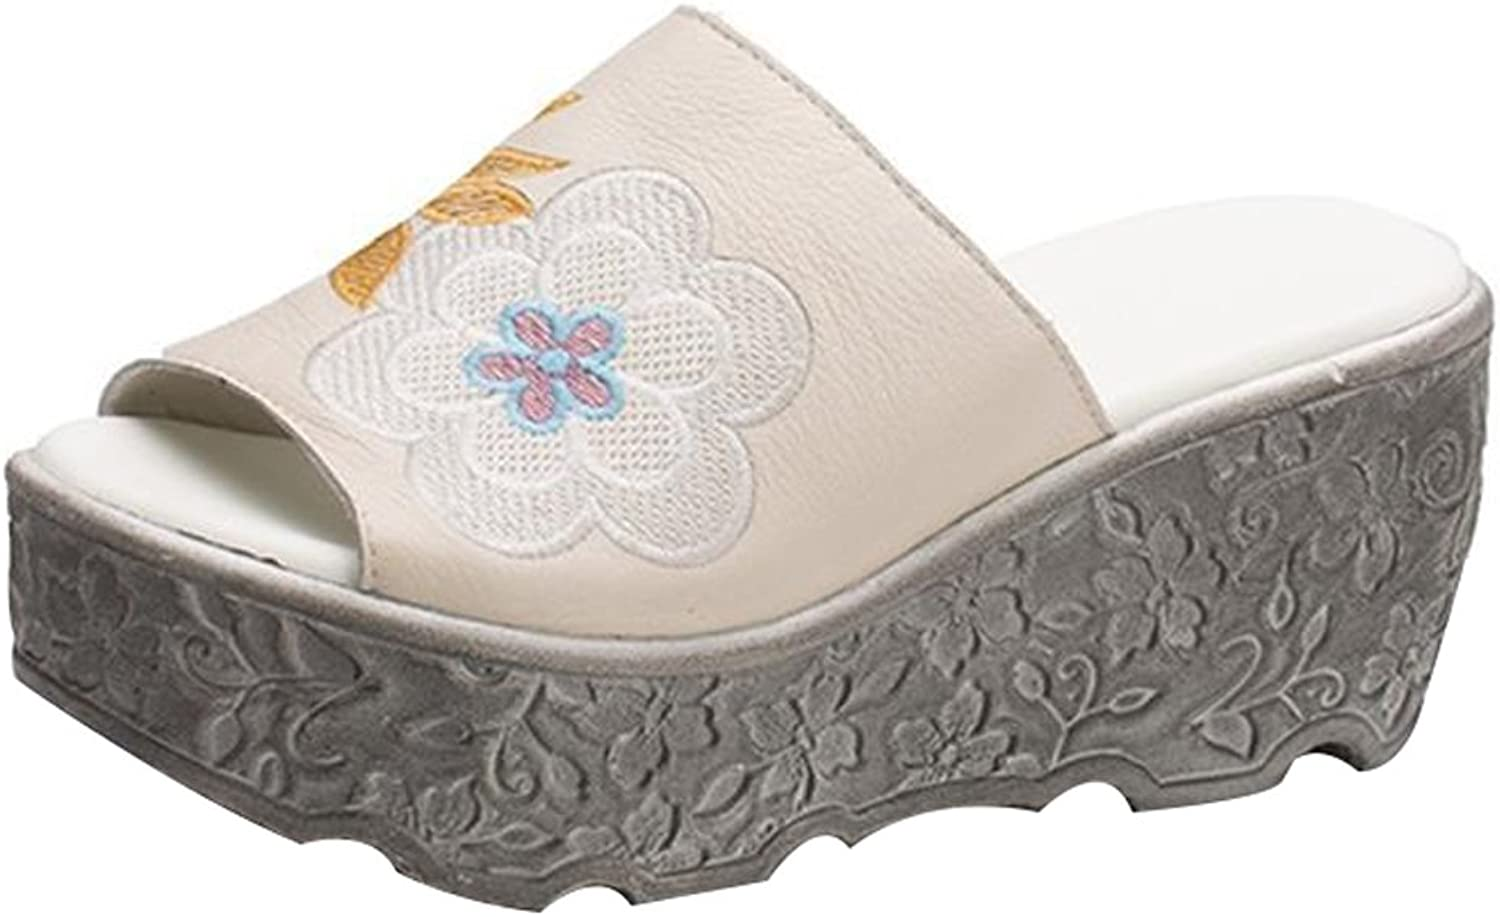 Zoulee Women's Leather Peep Toe Sandals Beach Holiday Embroidered Platform Slipper